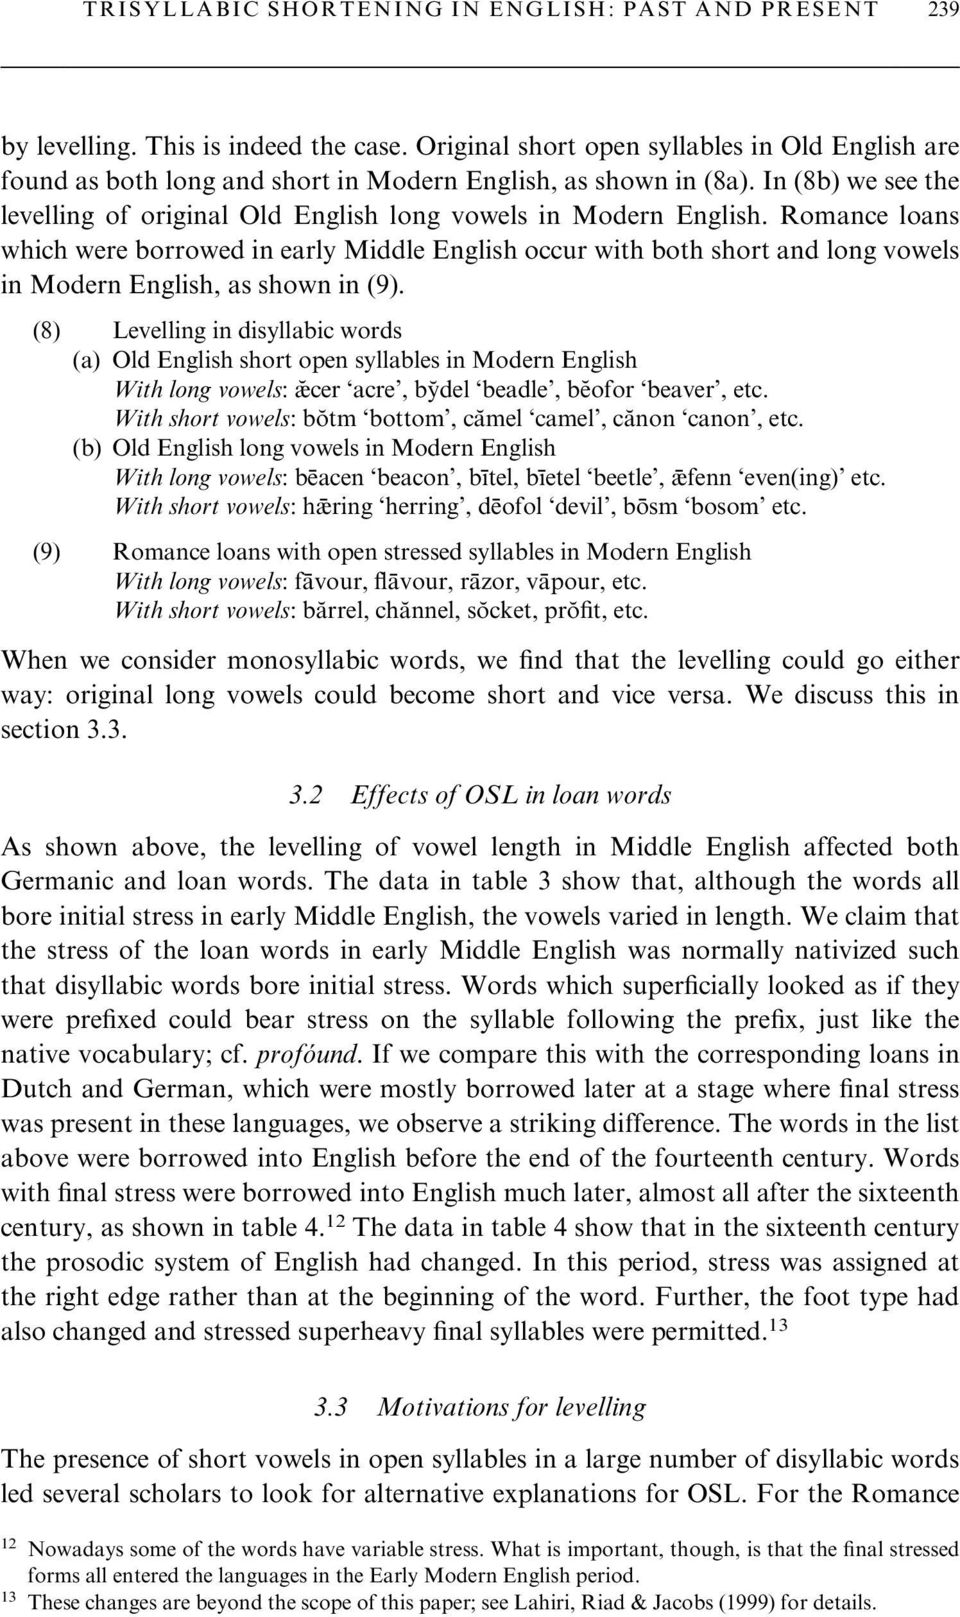 Romance loans which were borrowed in early Middle English occur with both short and long vowels in Modern English, as shown in (9).